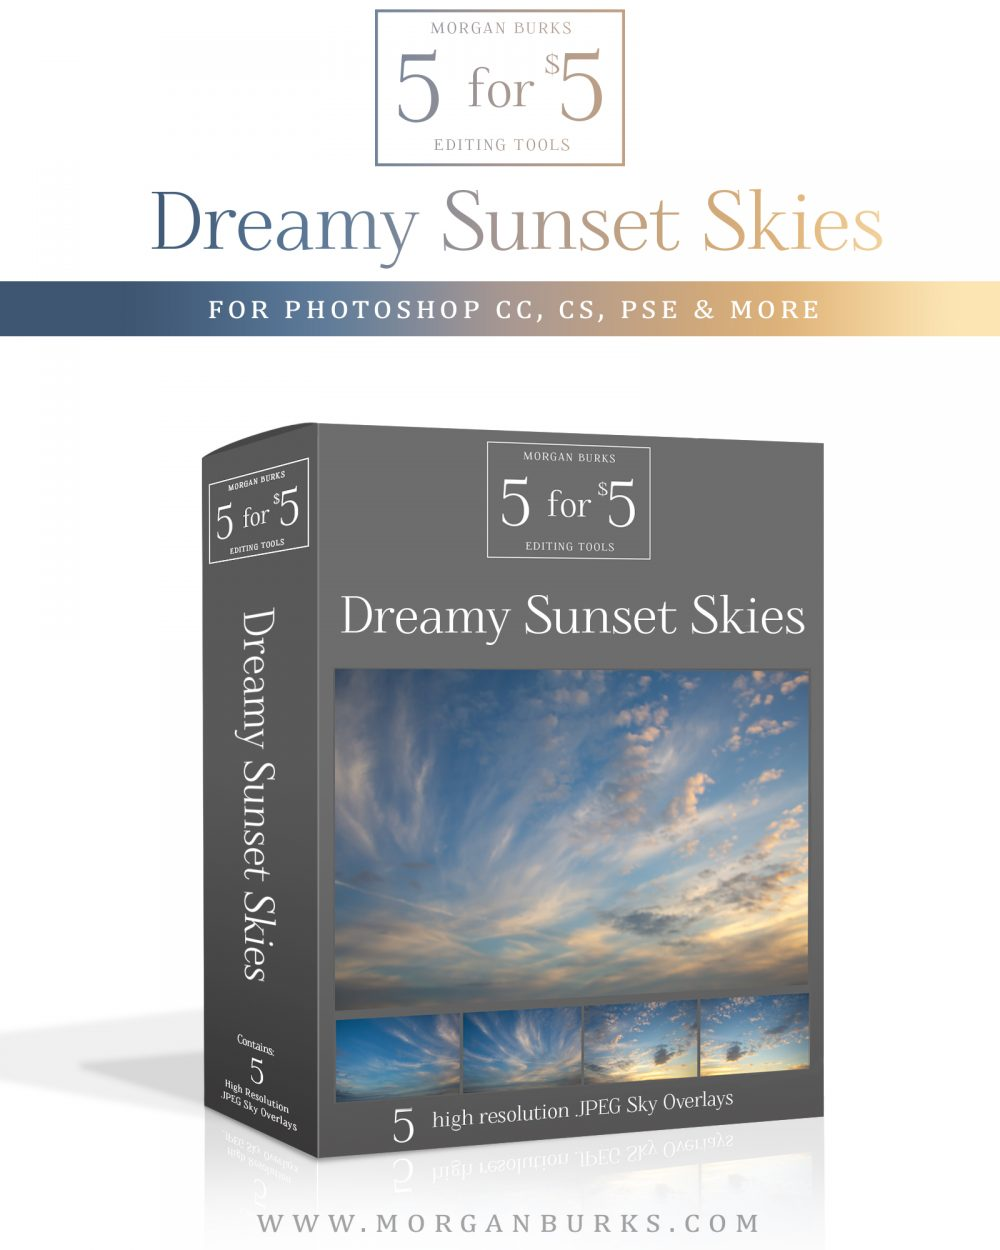 Dreamy Sunset Sky Overlays for Photoshop & Elements - $5 Editing Products for Photographers. Easy to use and affordable!